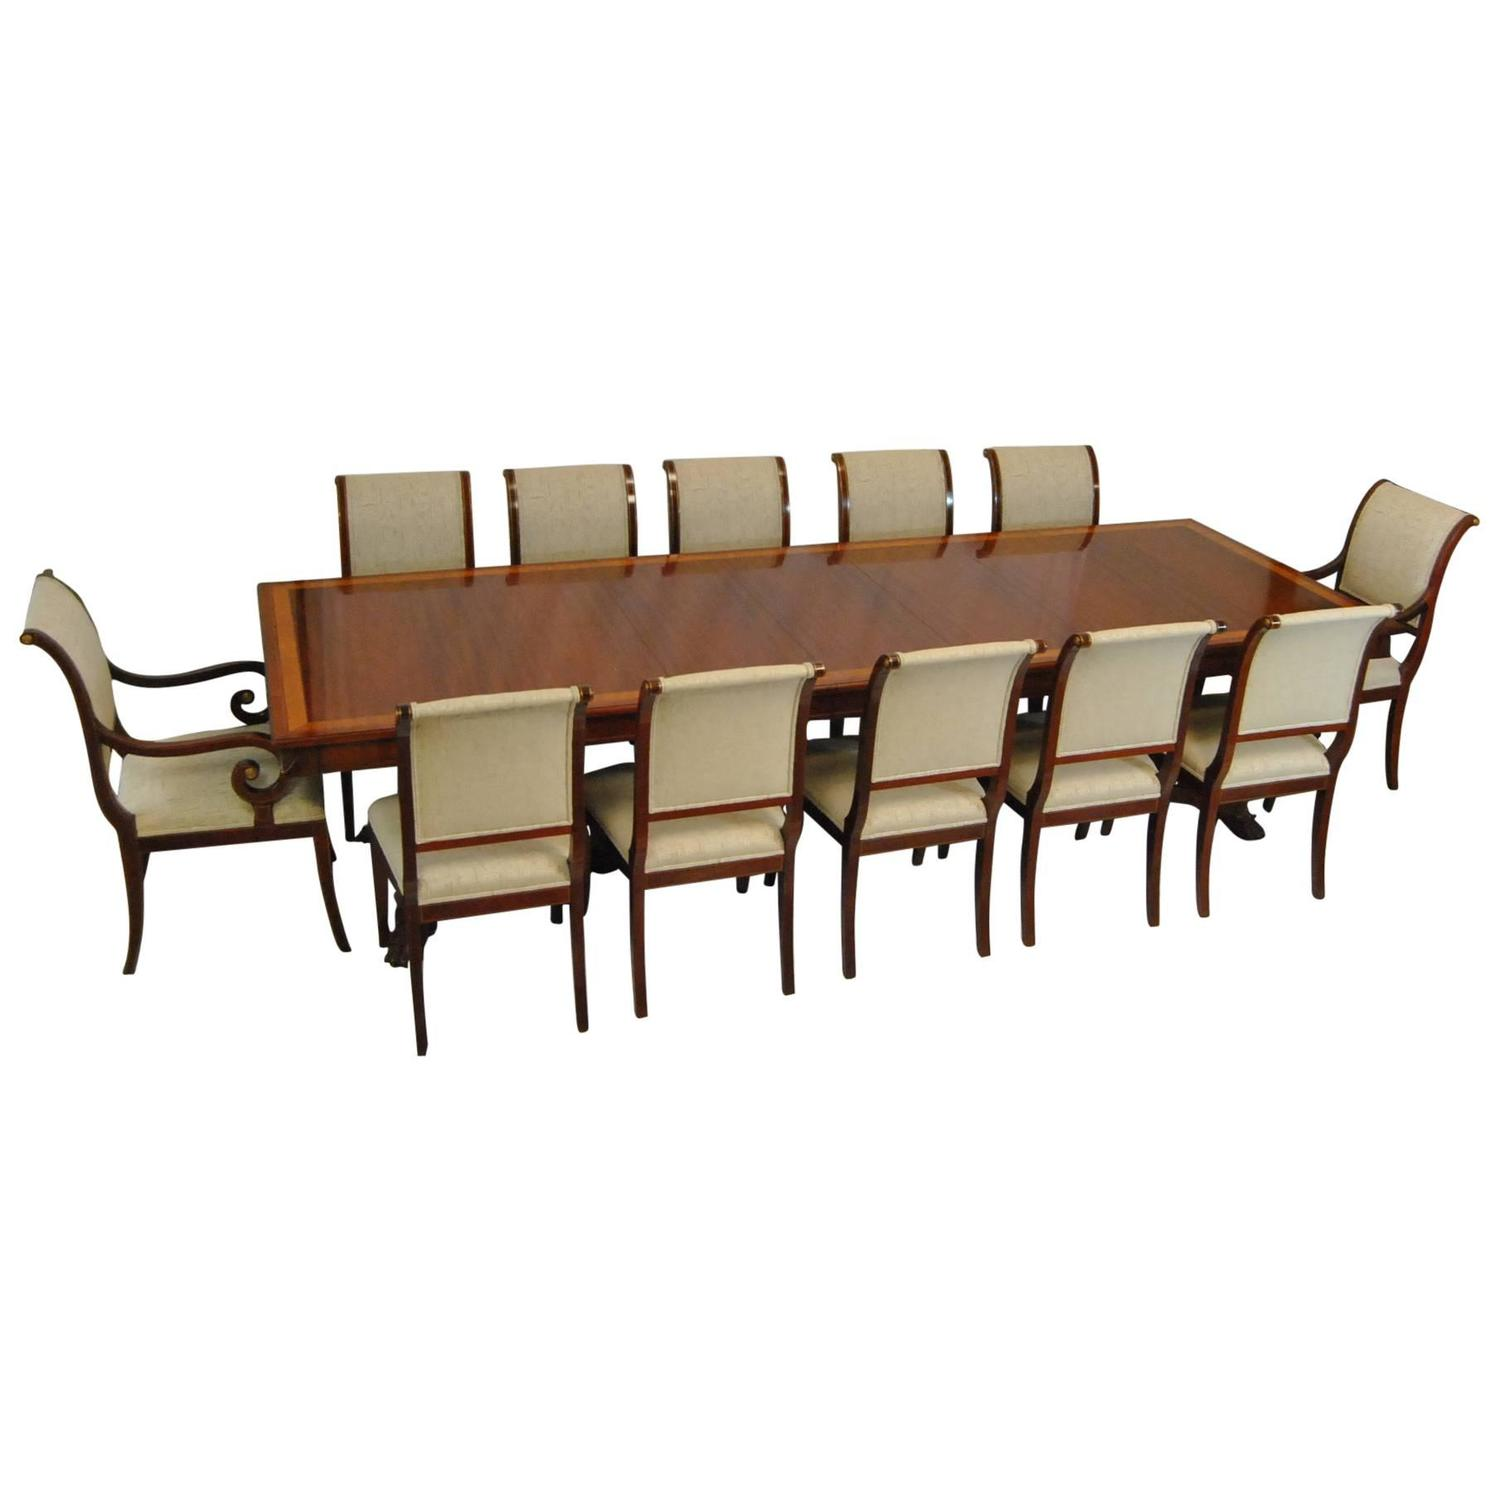 mahogany dining table and 12 chairs by kindel neoclassic collection at 1stdibs. Black Bedroom Furniture Sets. Home Design Ideas